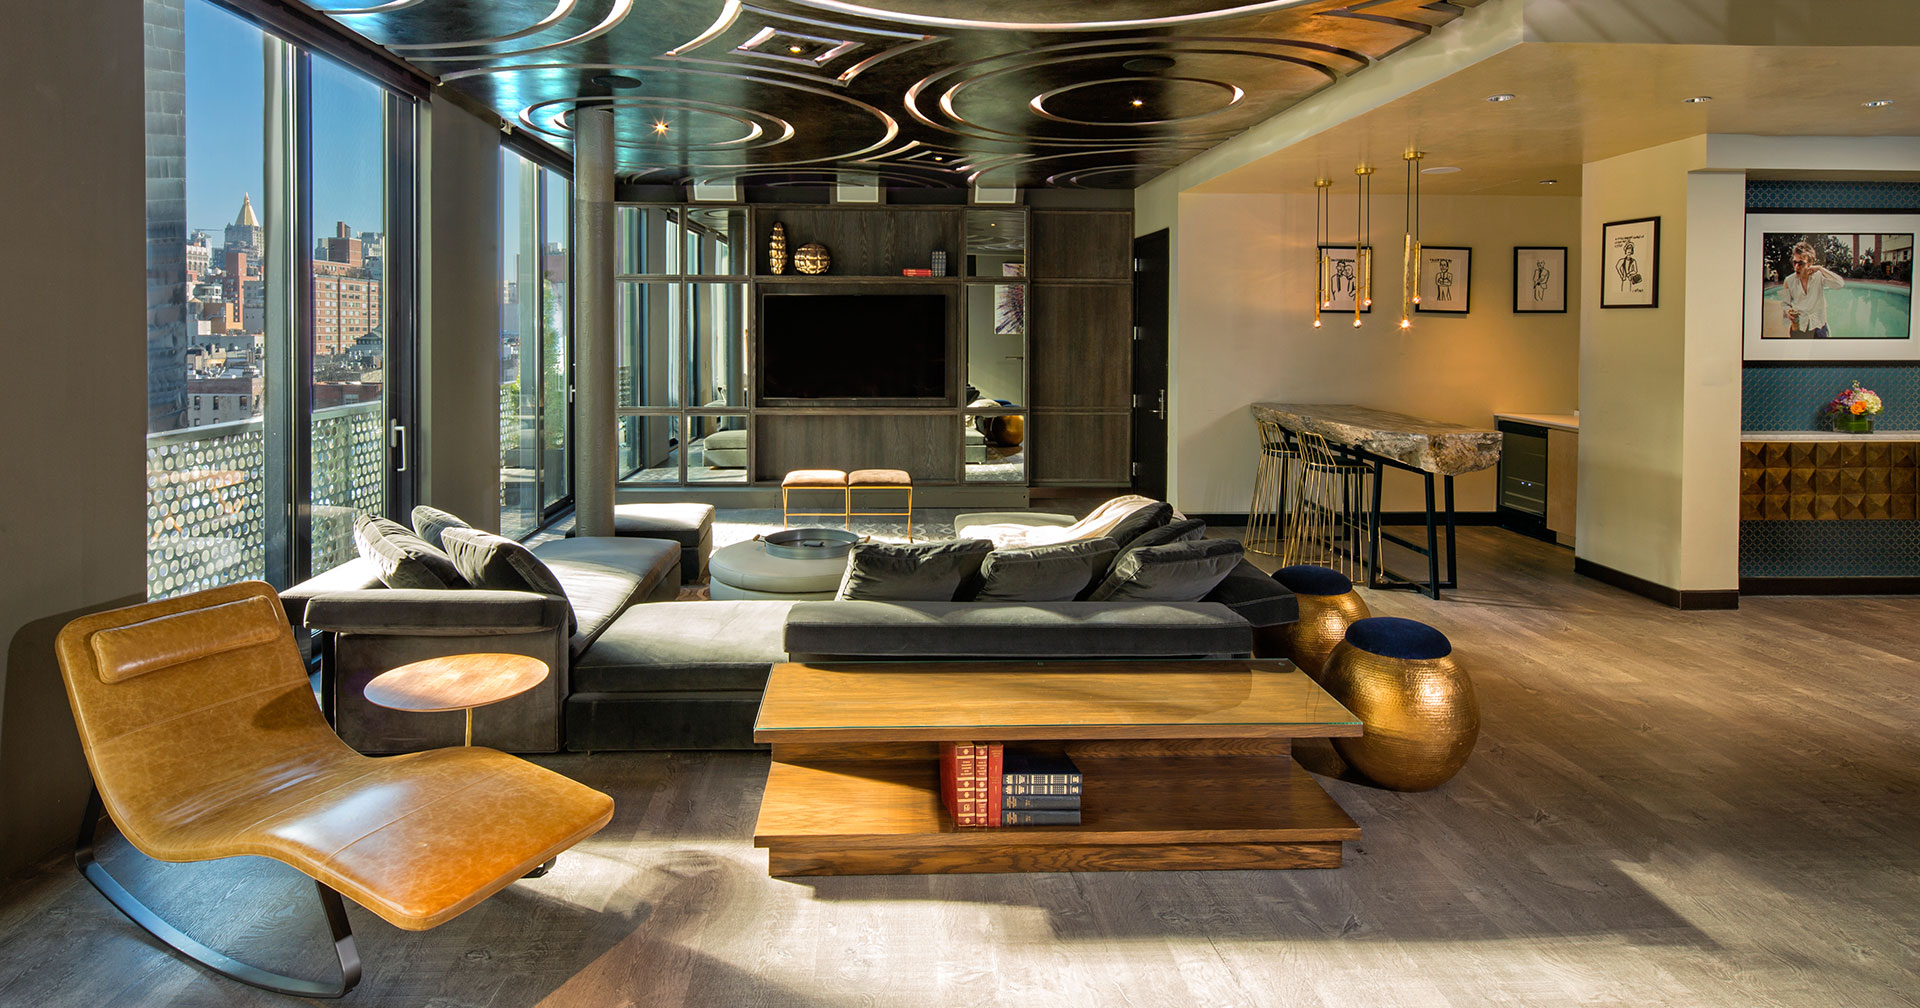 New York City Dream Hotel Downtown penthouse